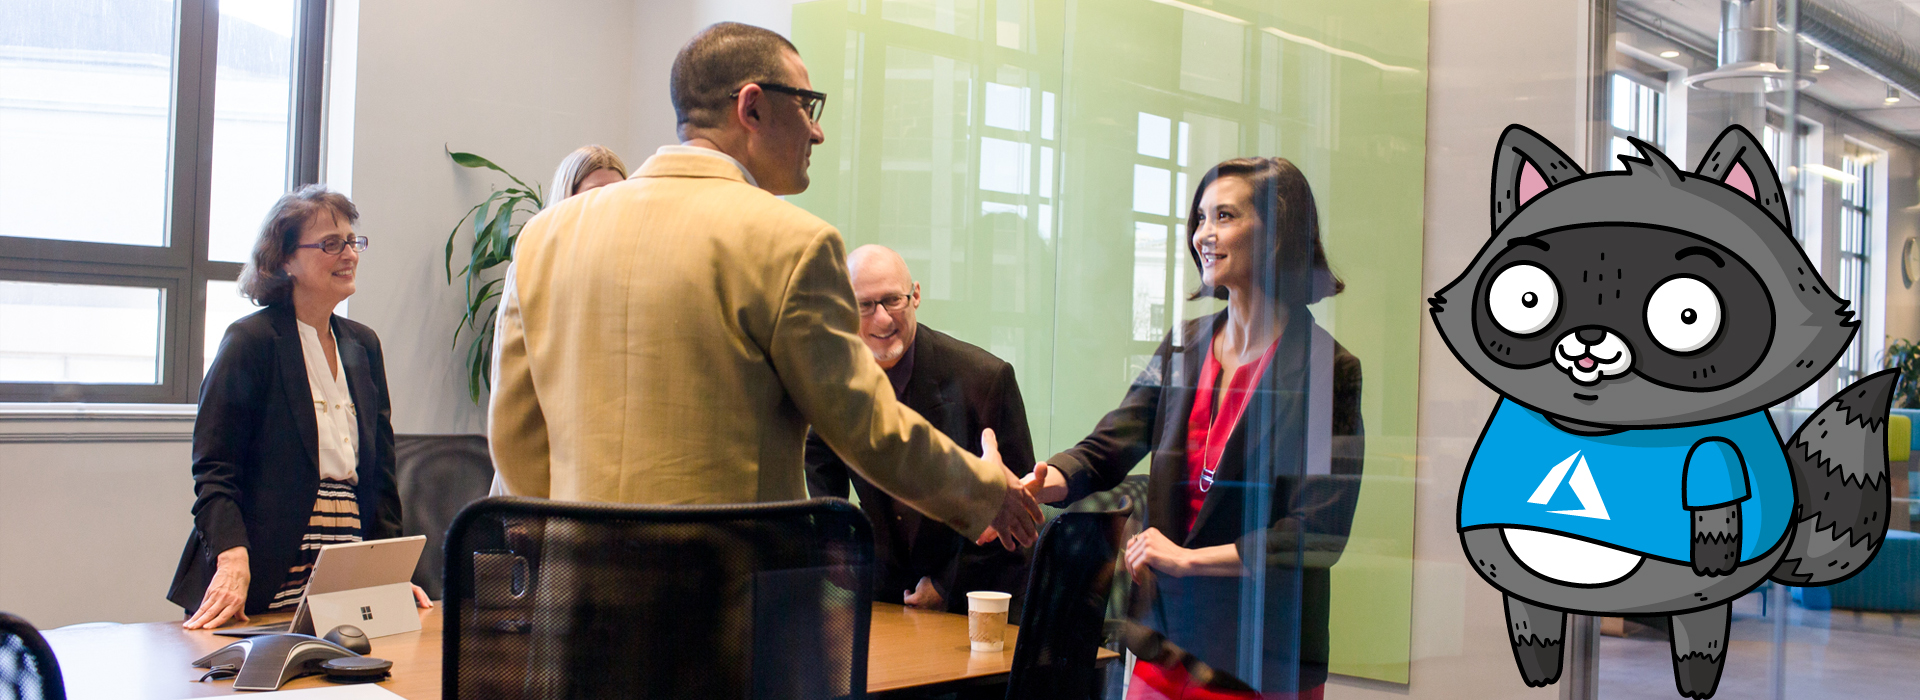 A woman and a man shaking hands in a conference room, with a picture of Bit the Raccoon on the right of the image.